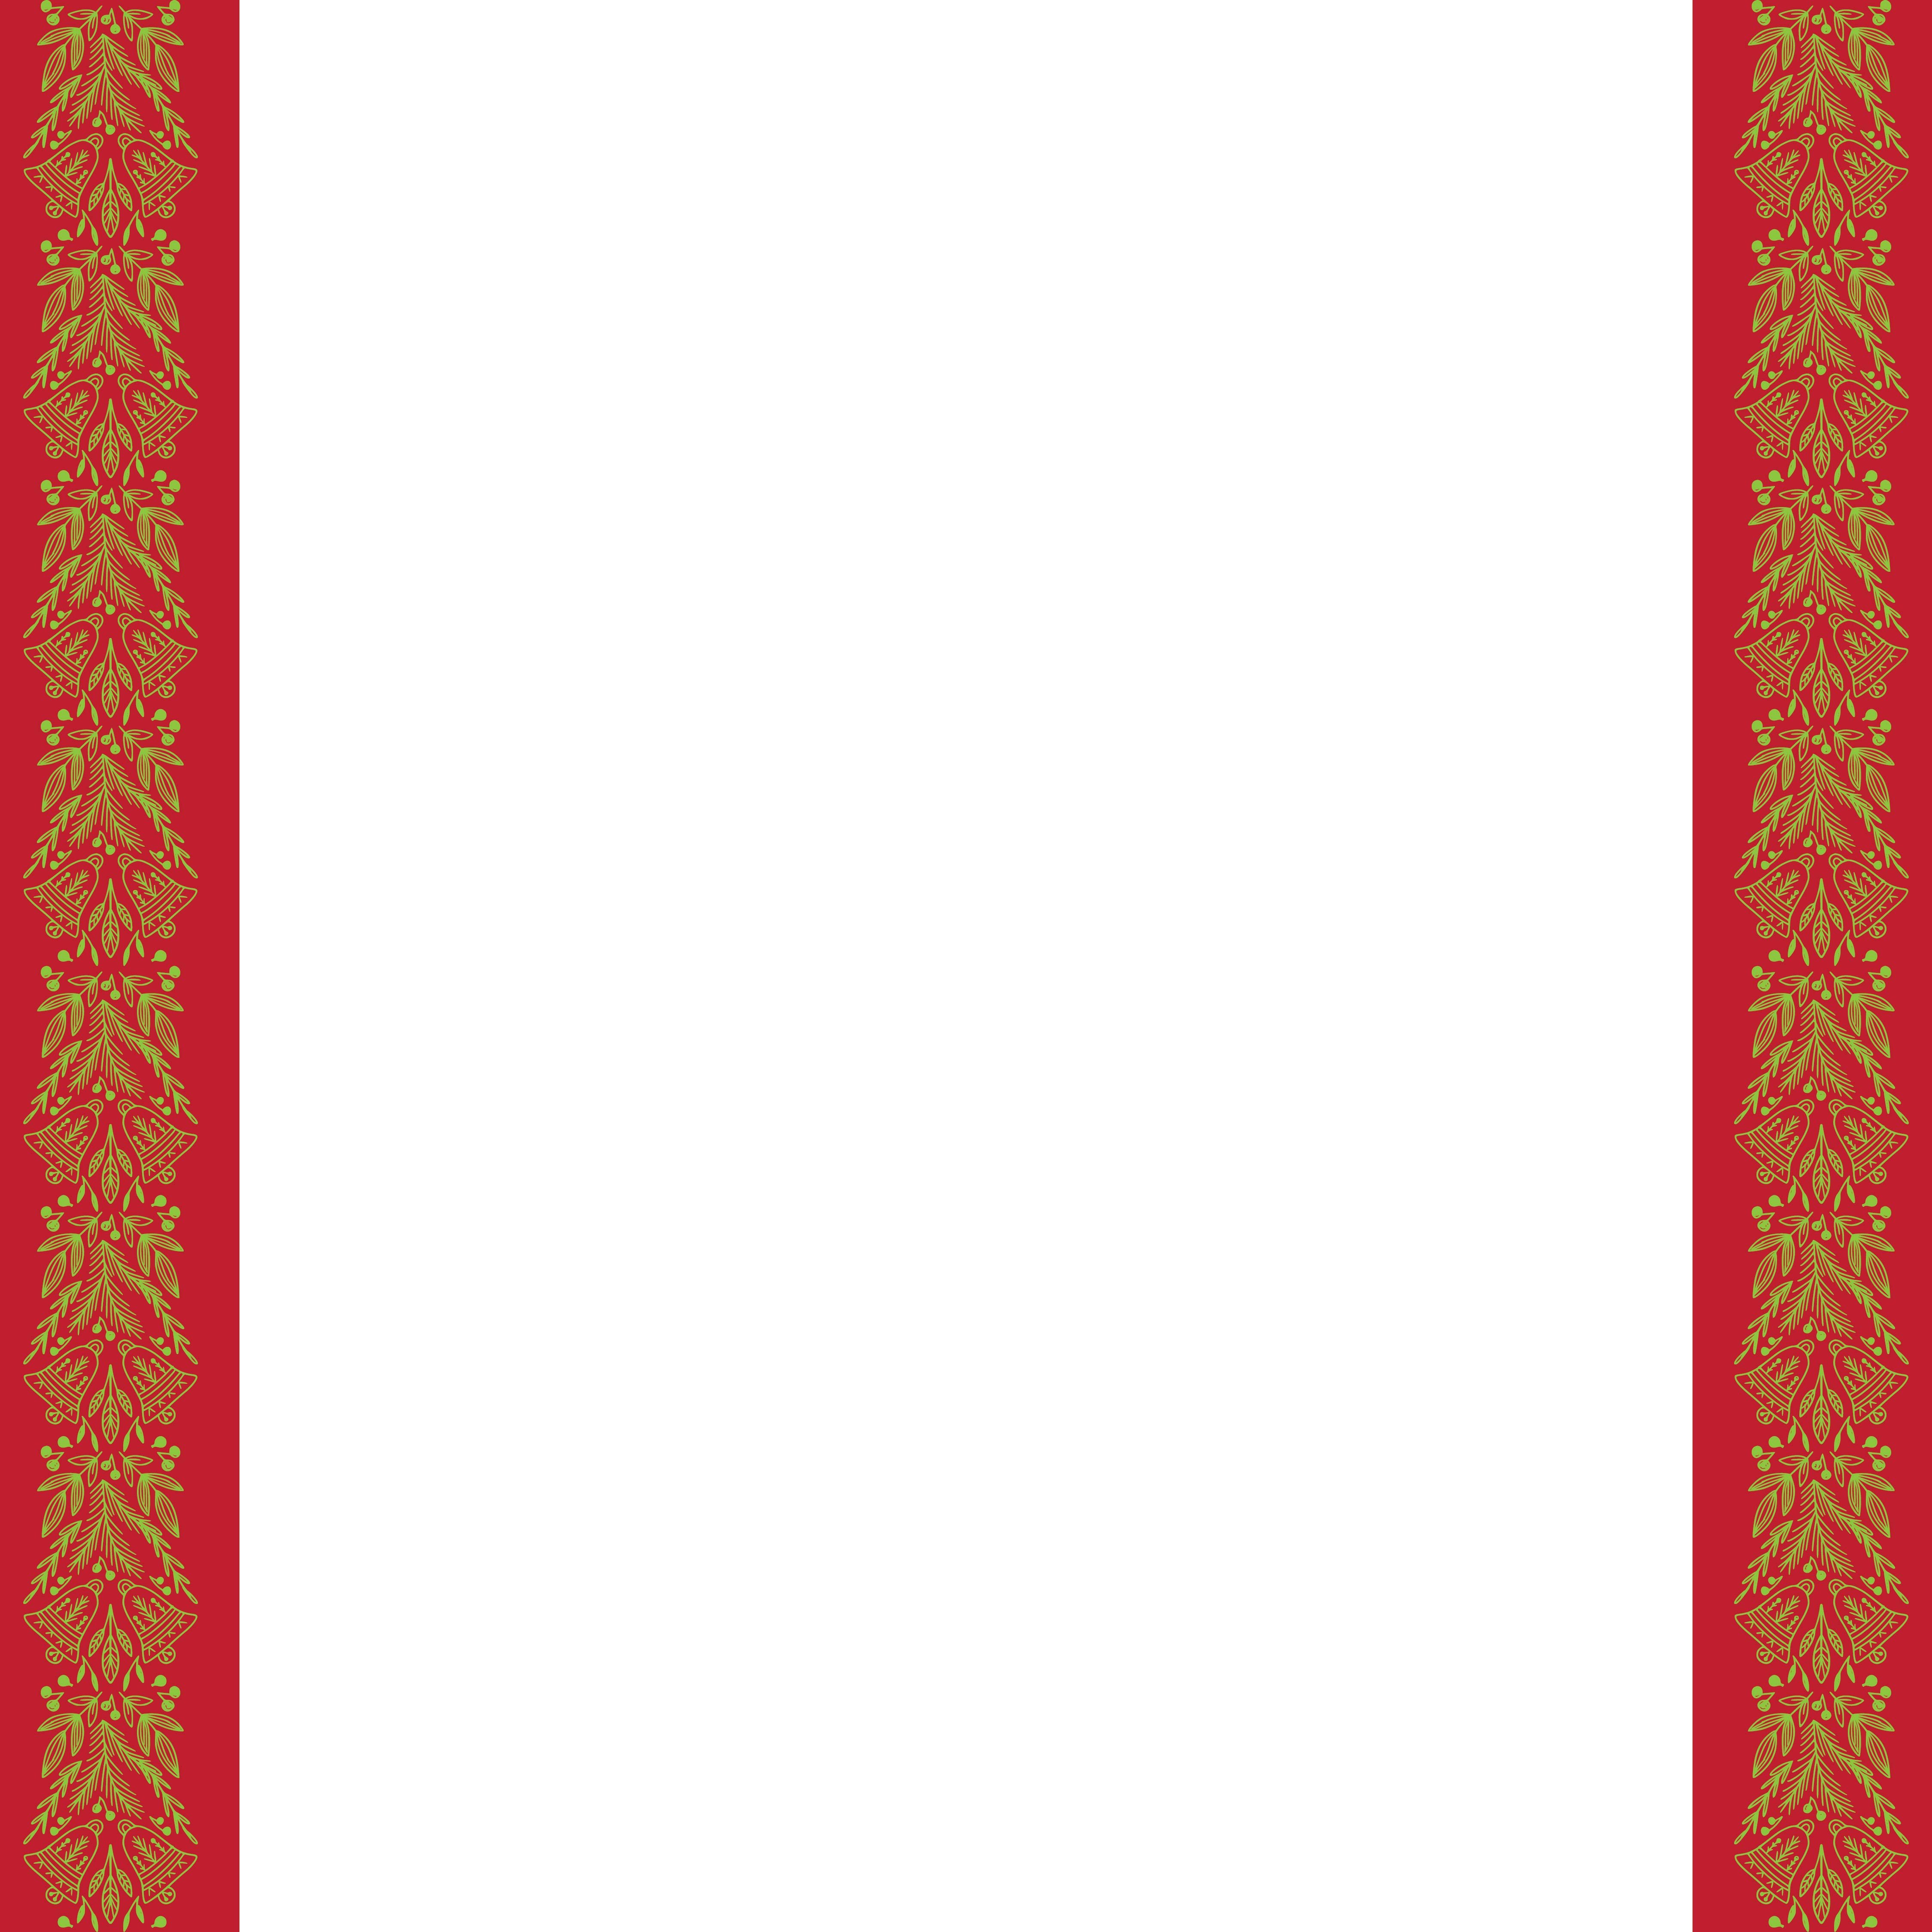 Printable Christmas Letter Head - Free Printable Christmas Letterhead ...